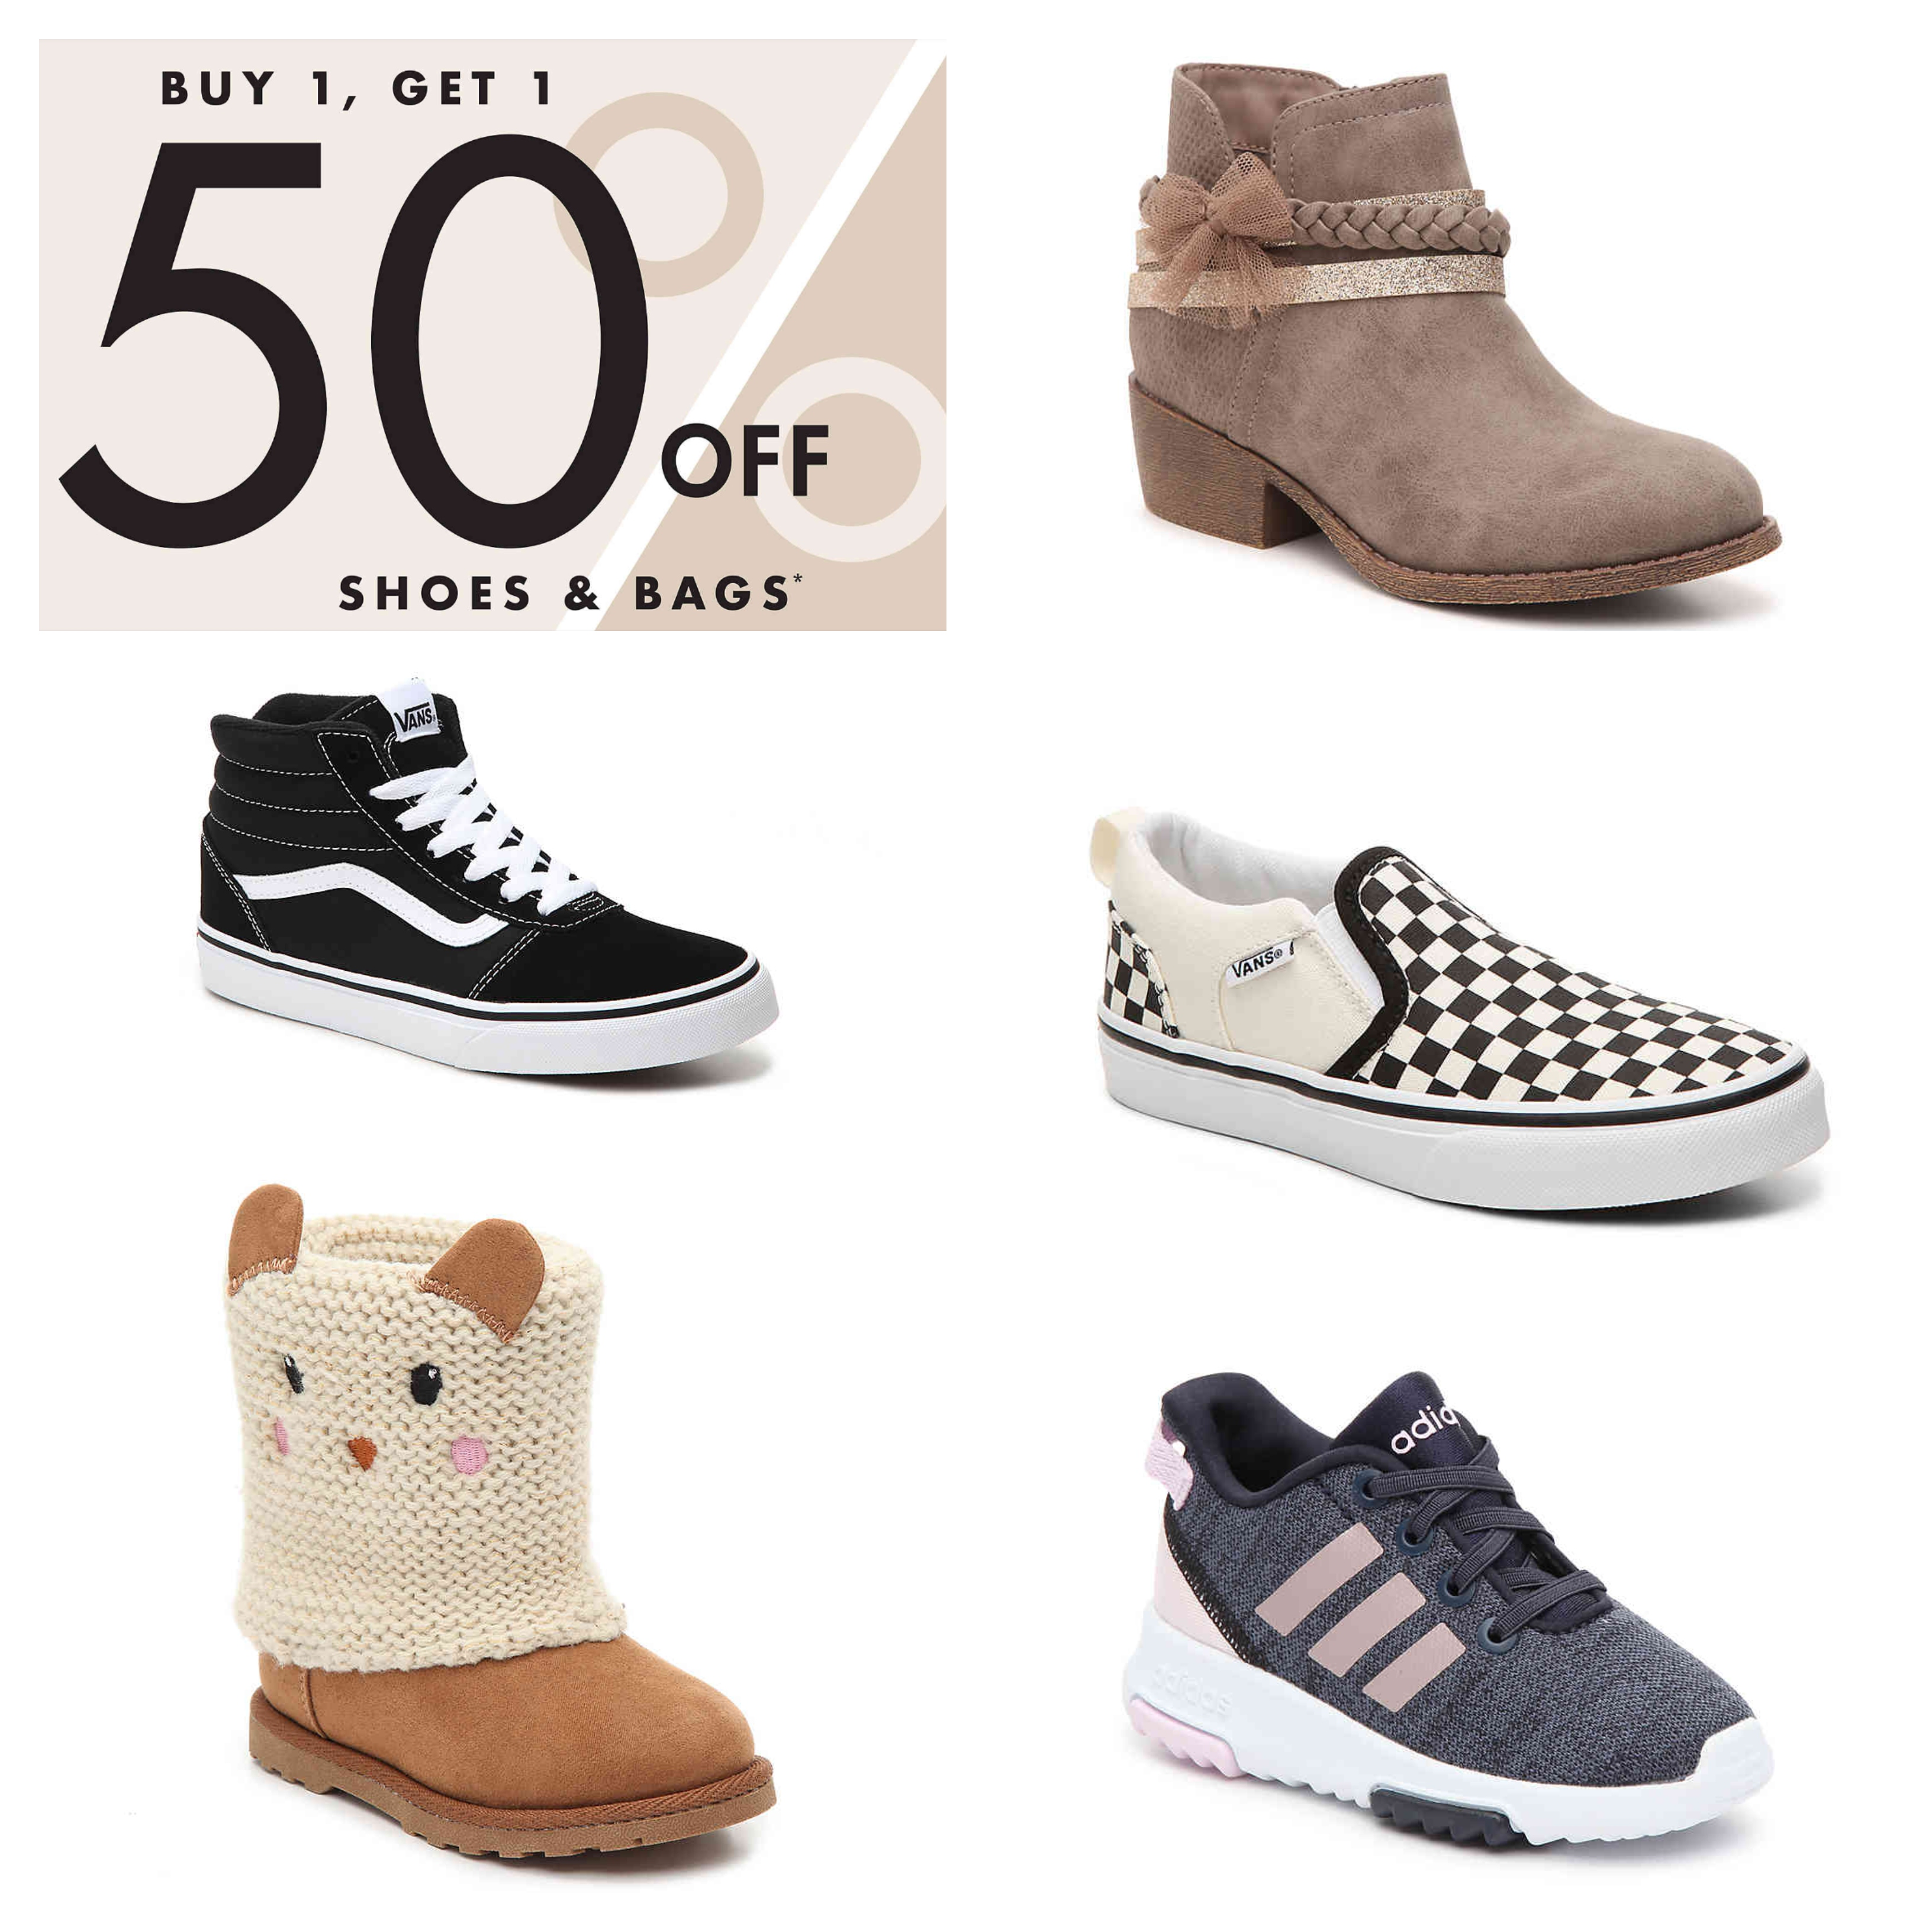 DSW: Buy 1 Get 1 50% Off Bags and Shoes! – Wear It For Less